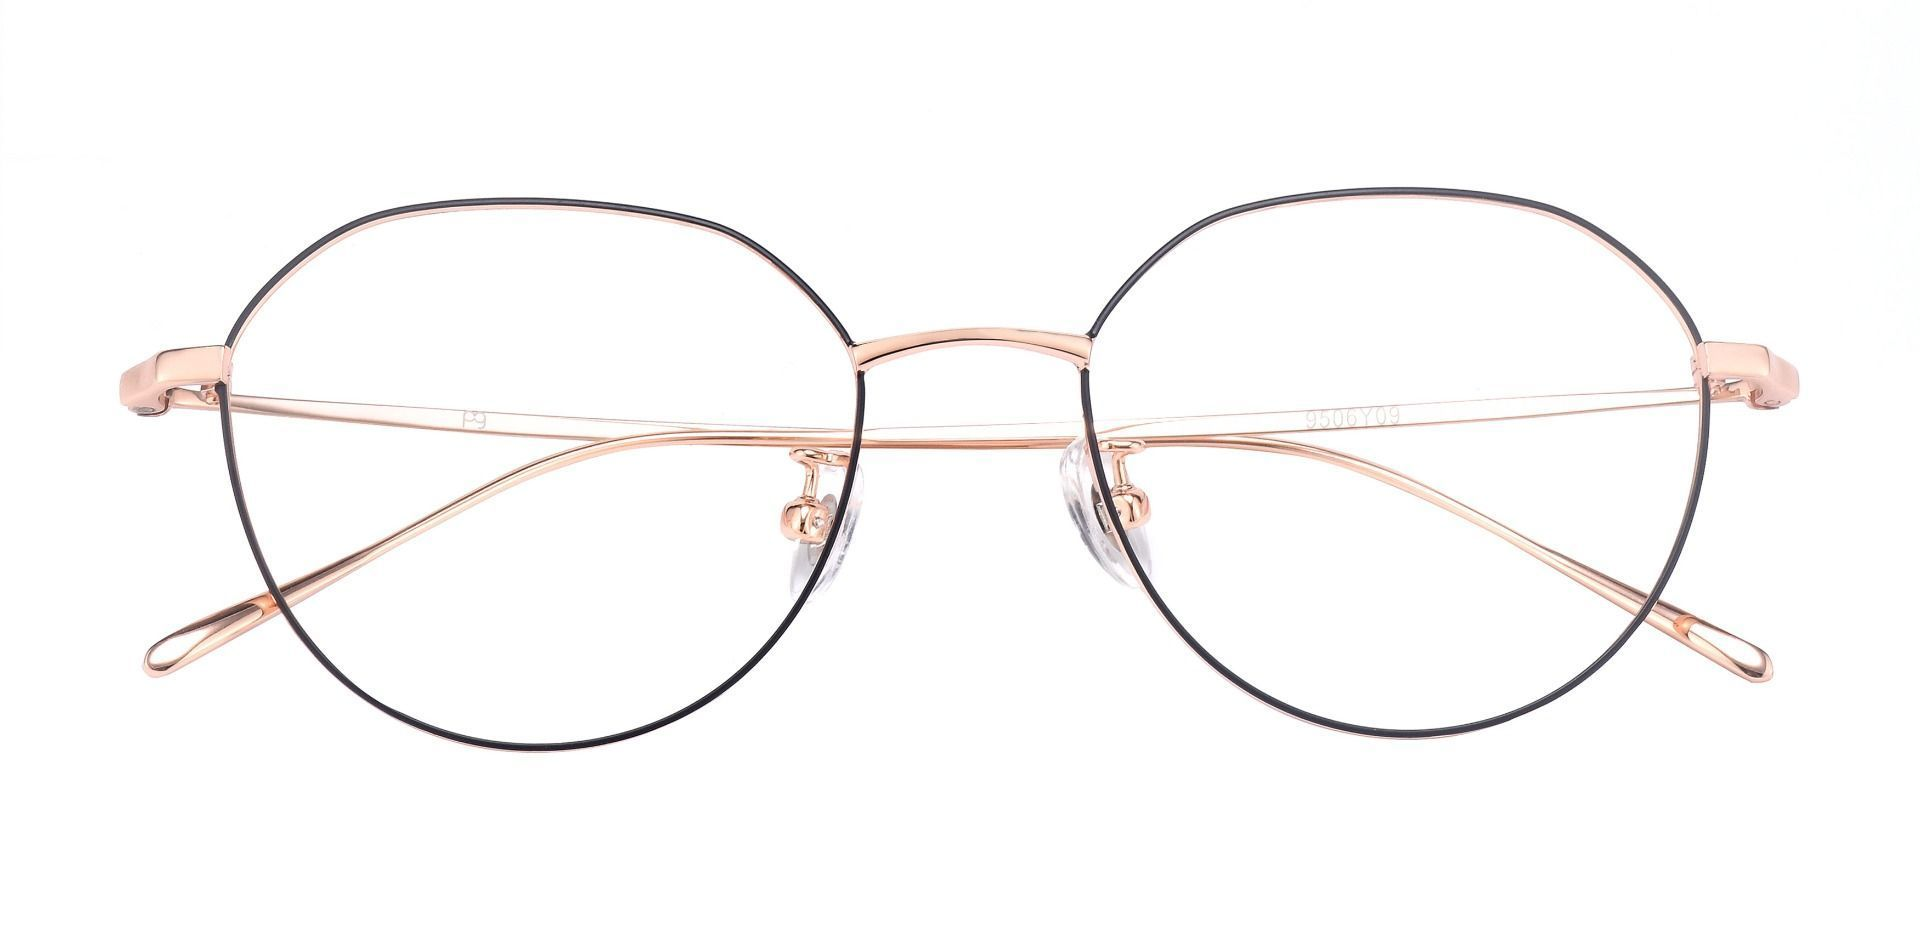 Celsius Geometric Prescription Glasses - Yellow